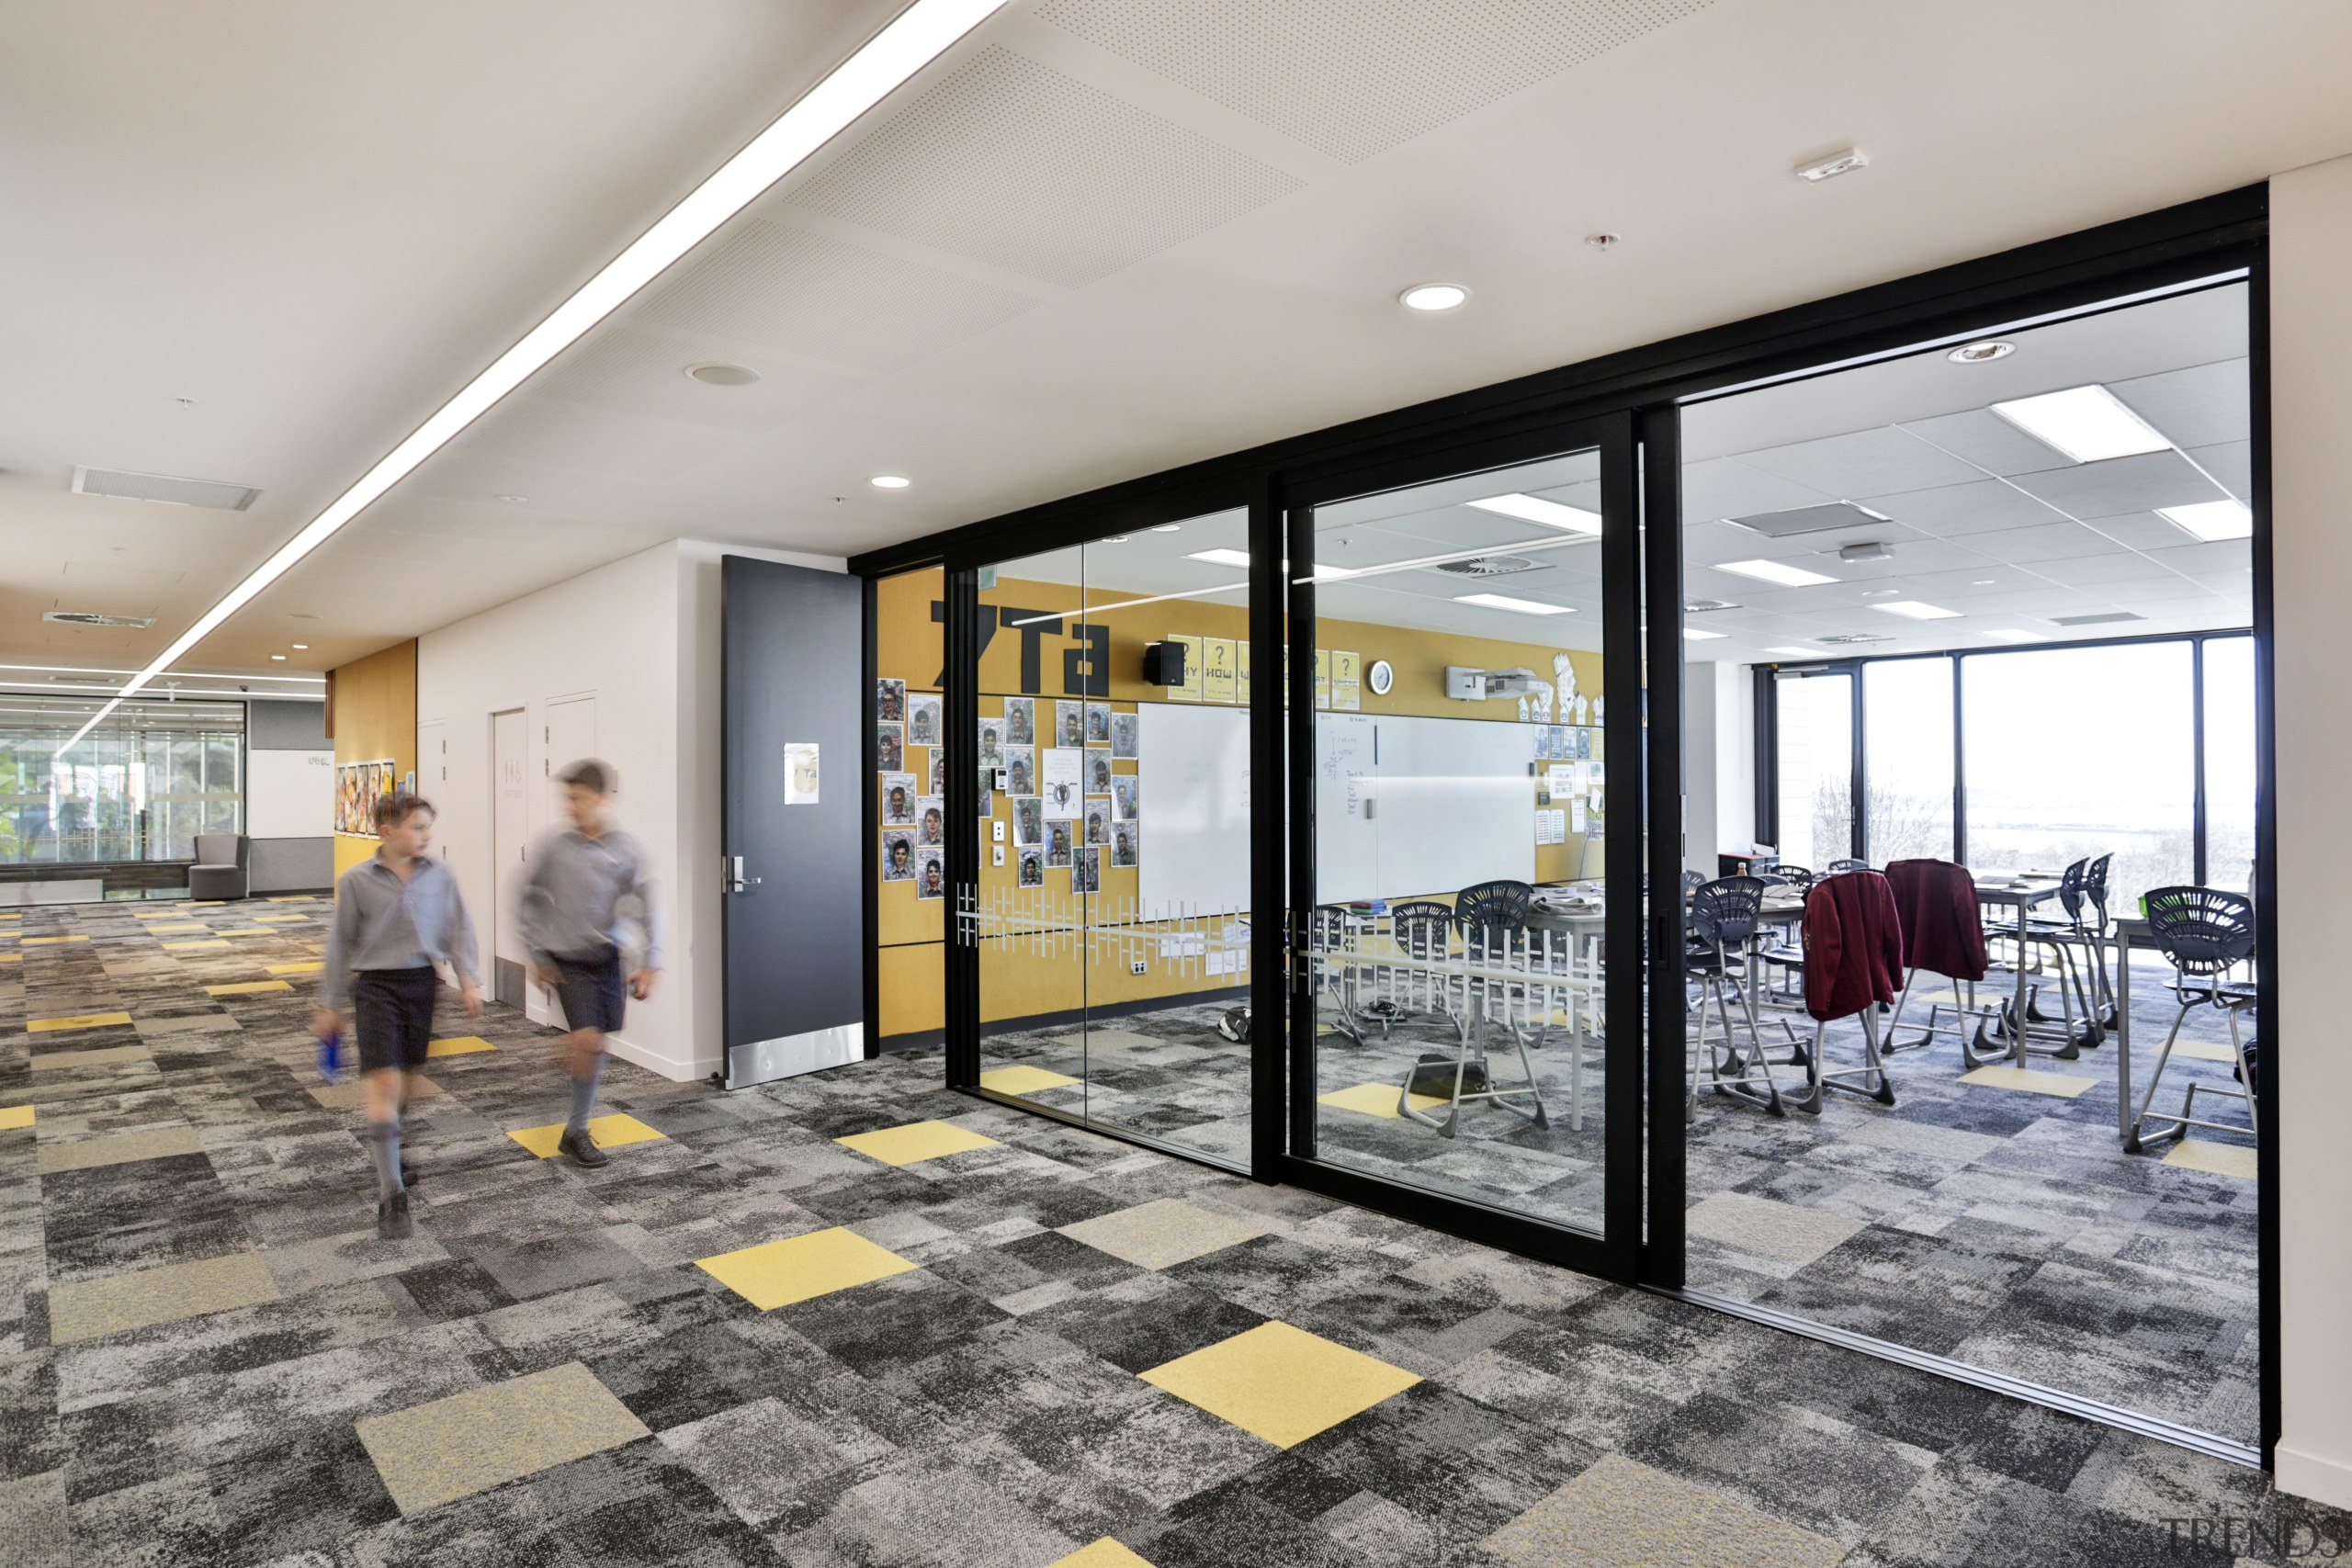 In King's School's new Centennial Building, sliding doors interior design, lobby, real estate, gray